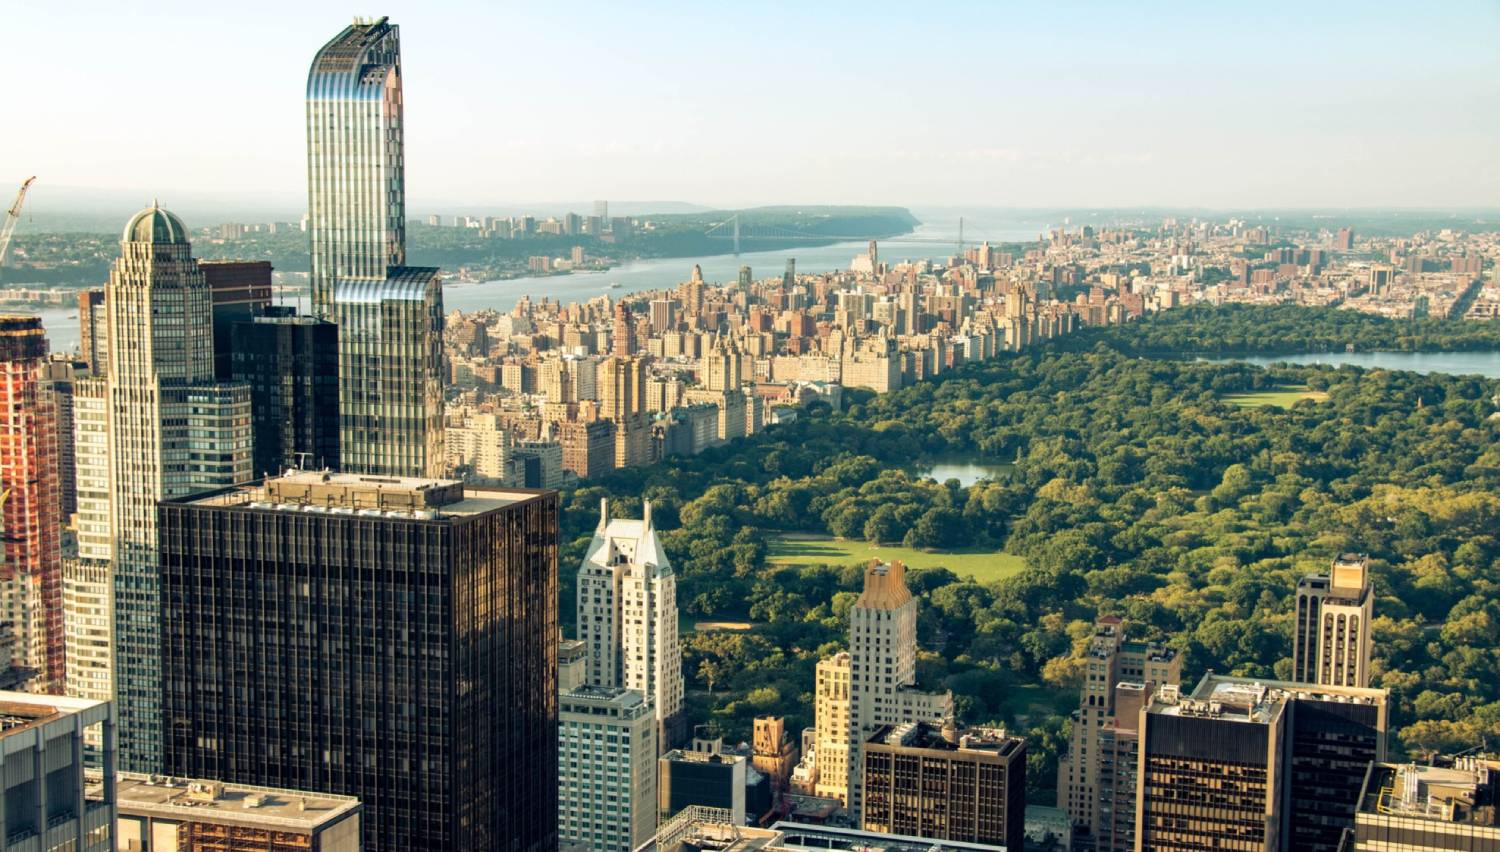 Top of the Rock - Things To Do In New York City